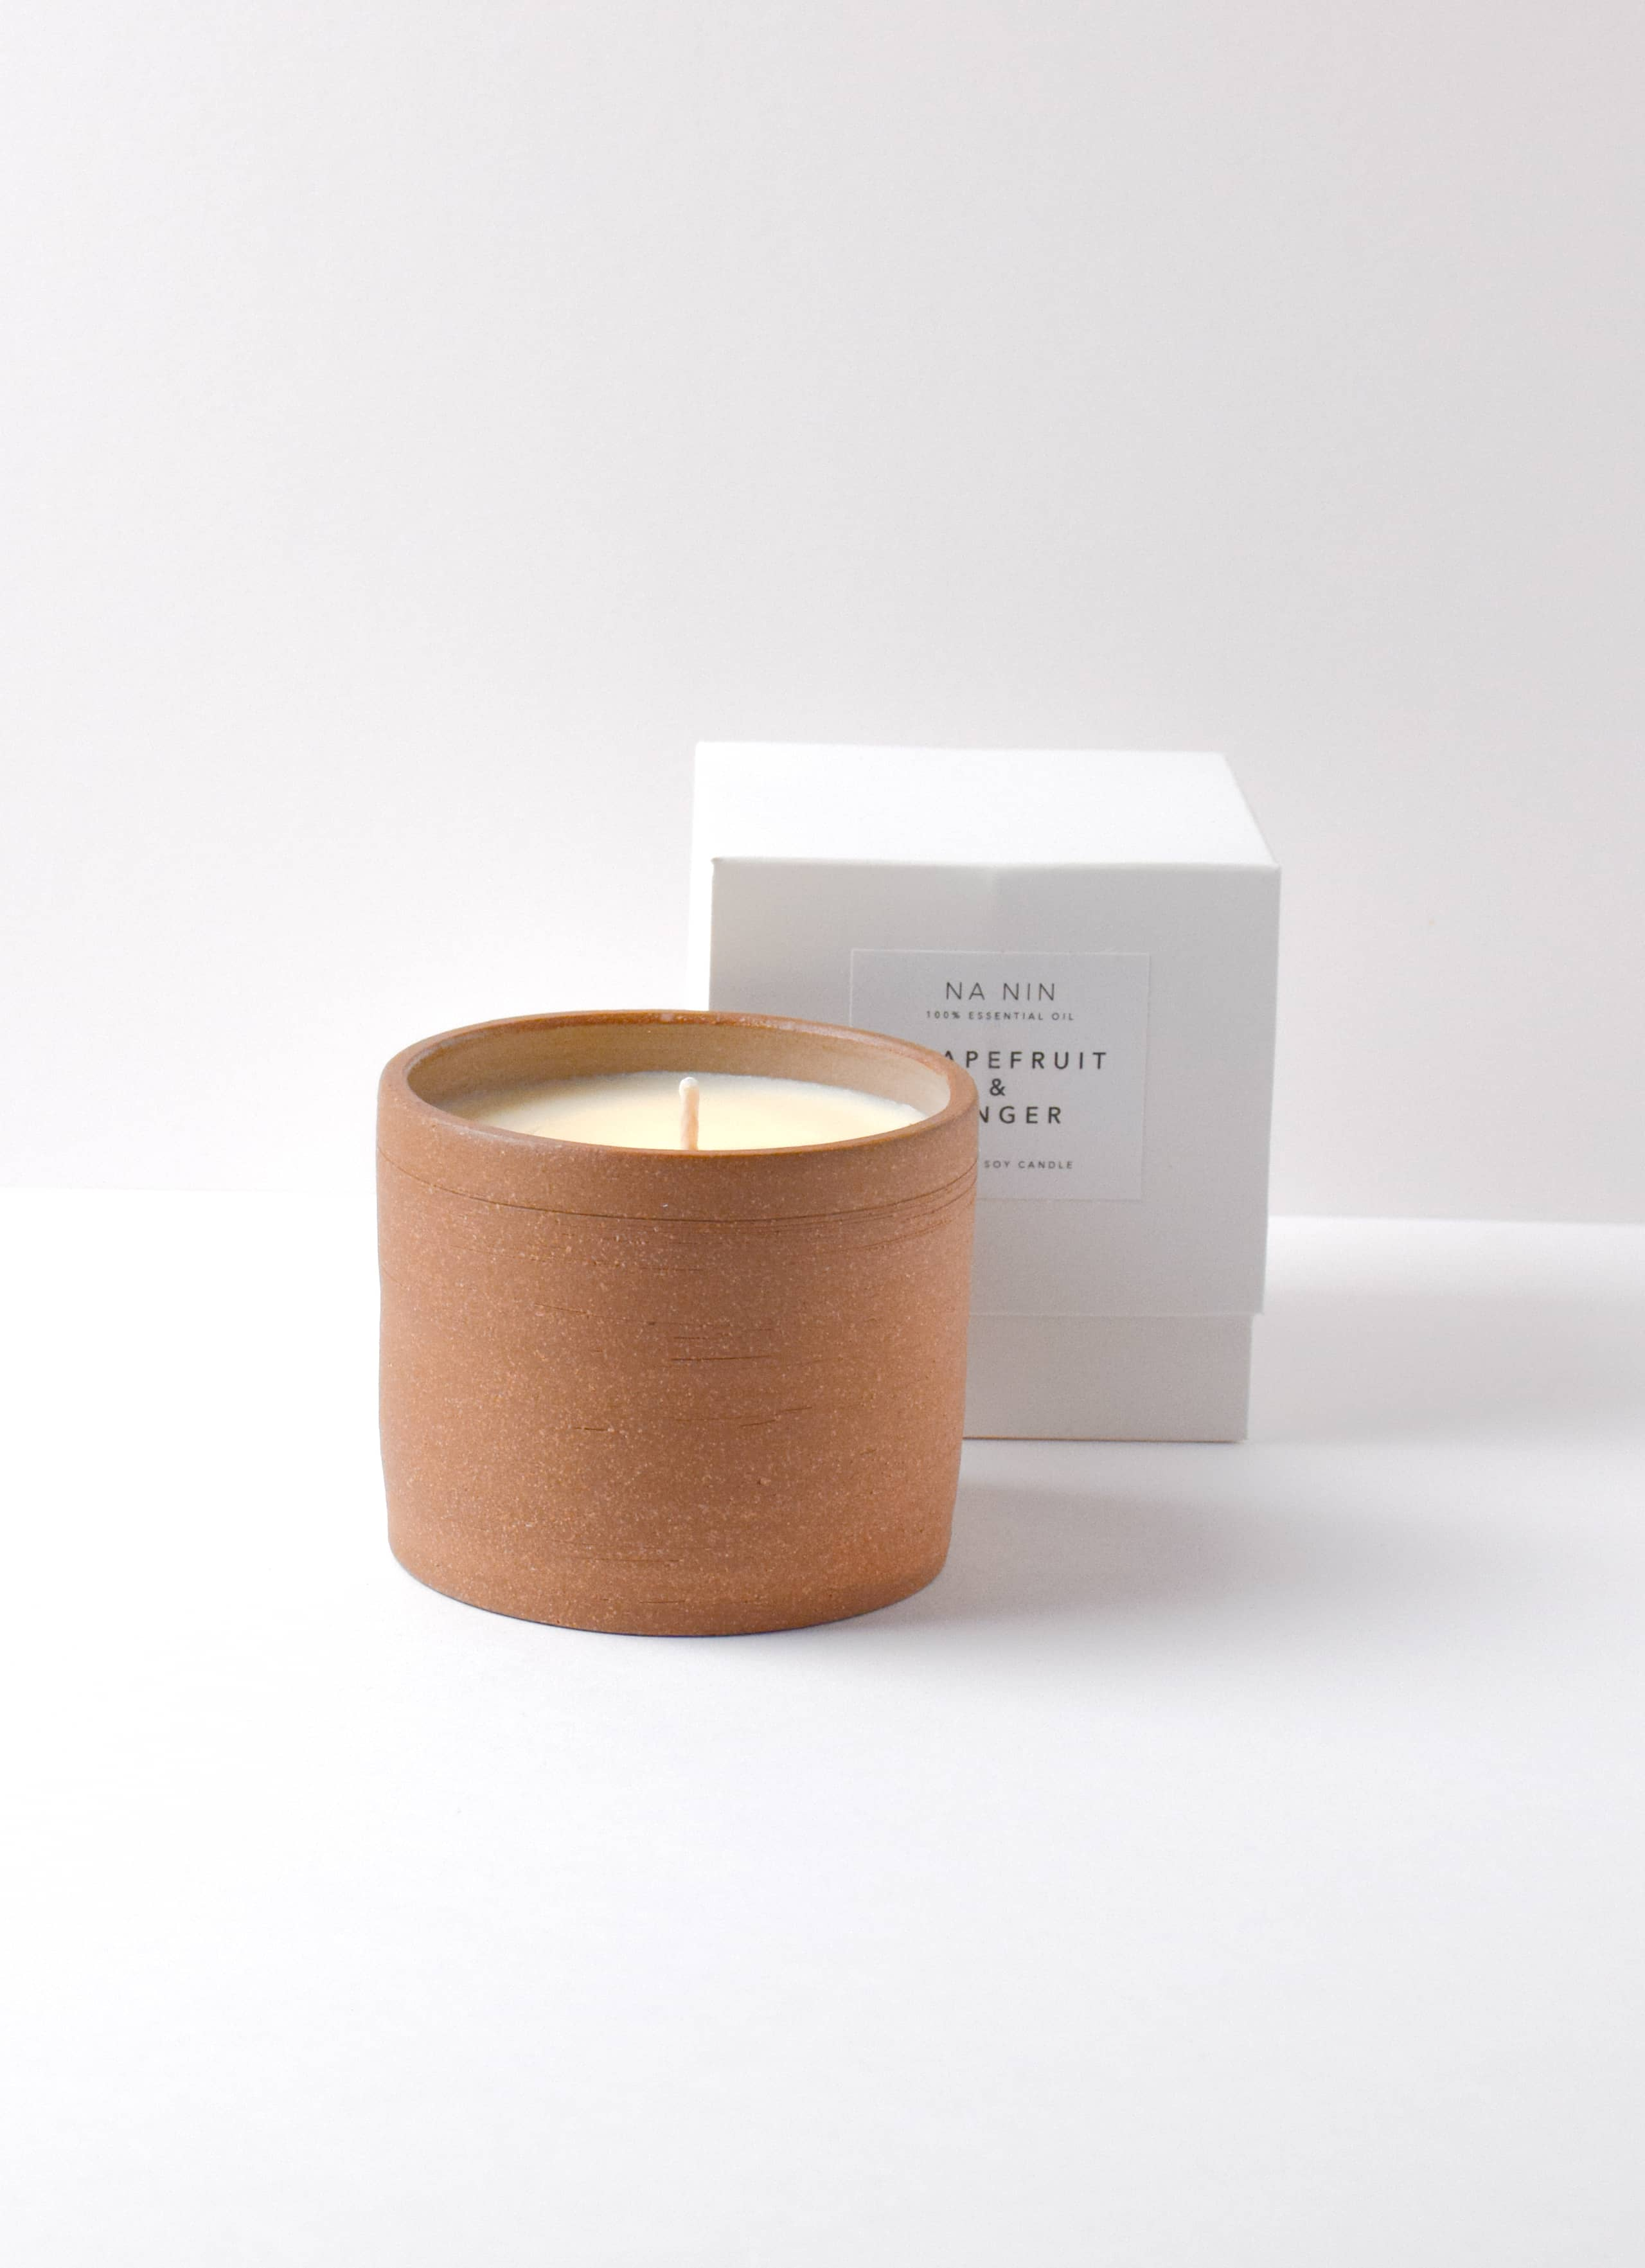 Na Nin - Terracotta Soy Wax Candle - Grapefruit and Ginger